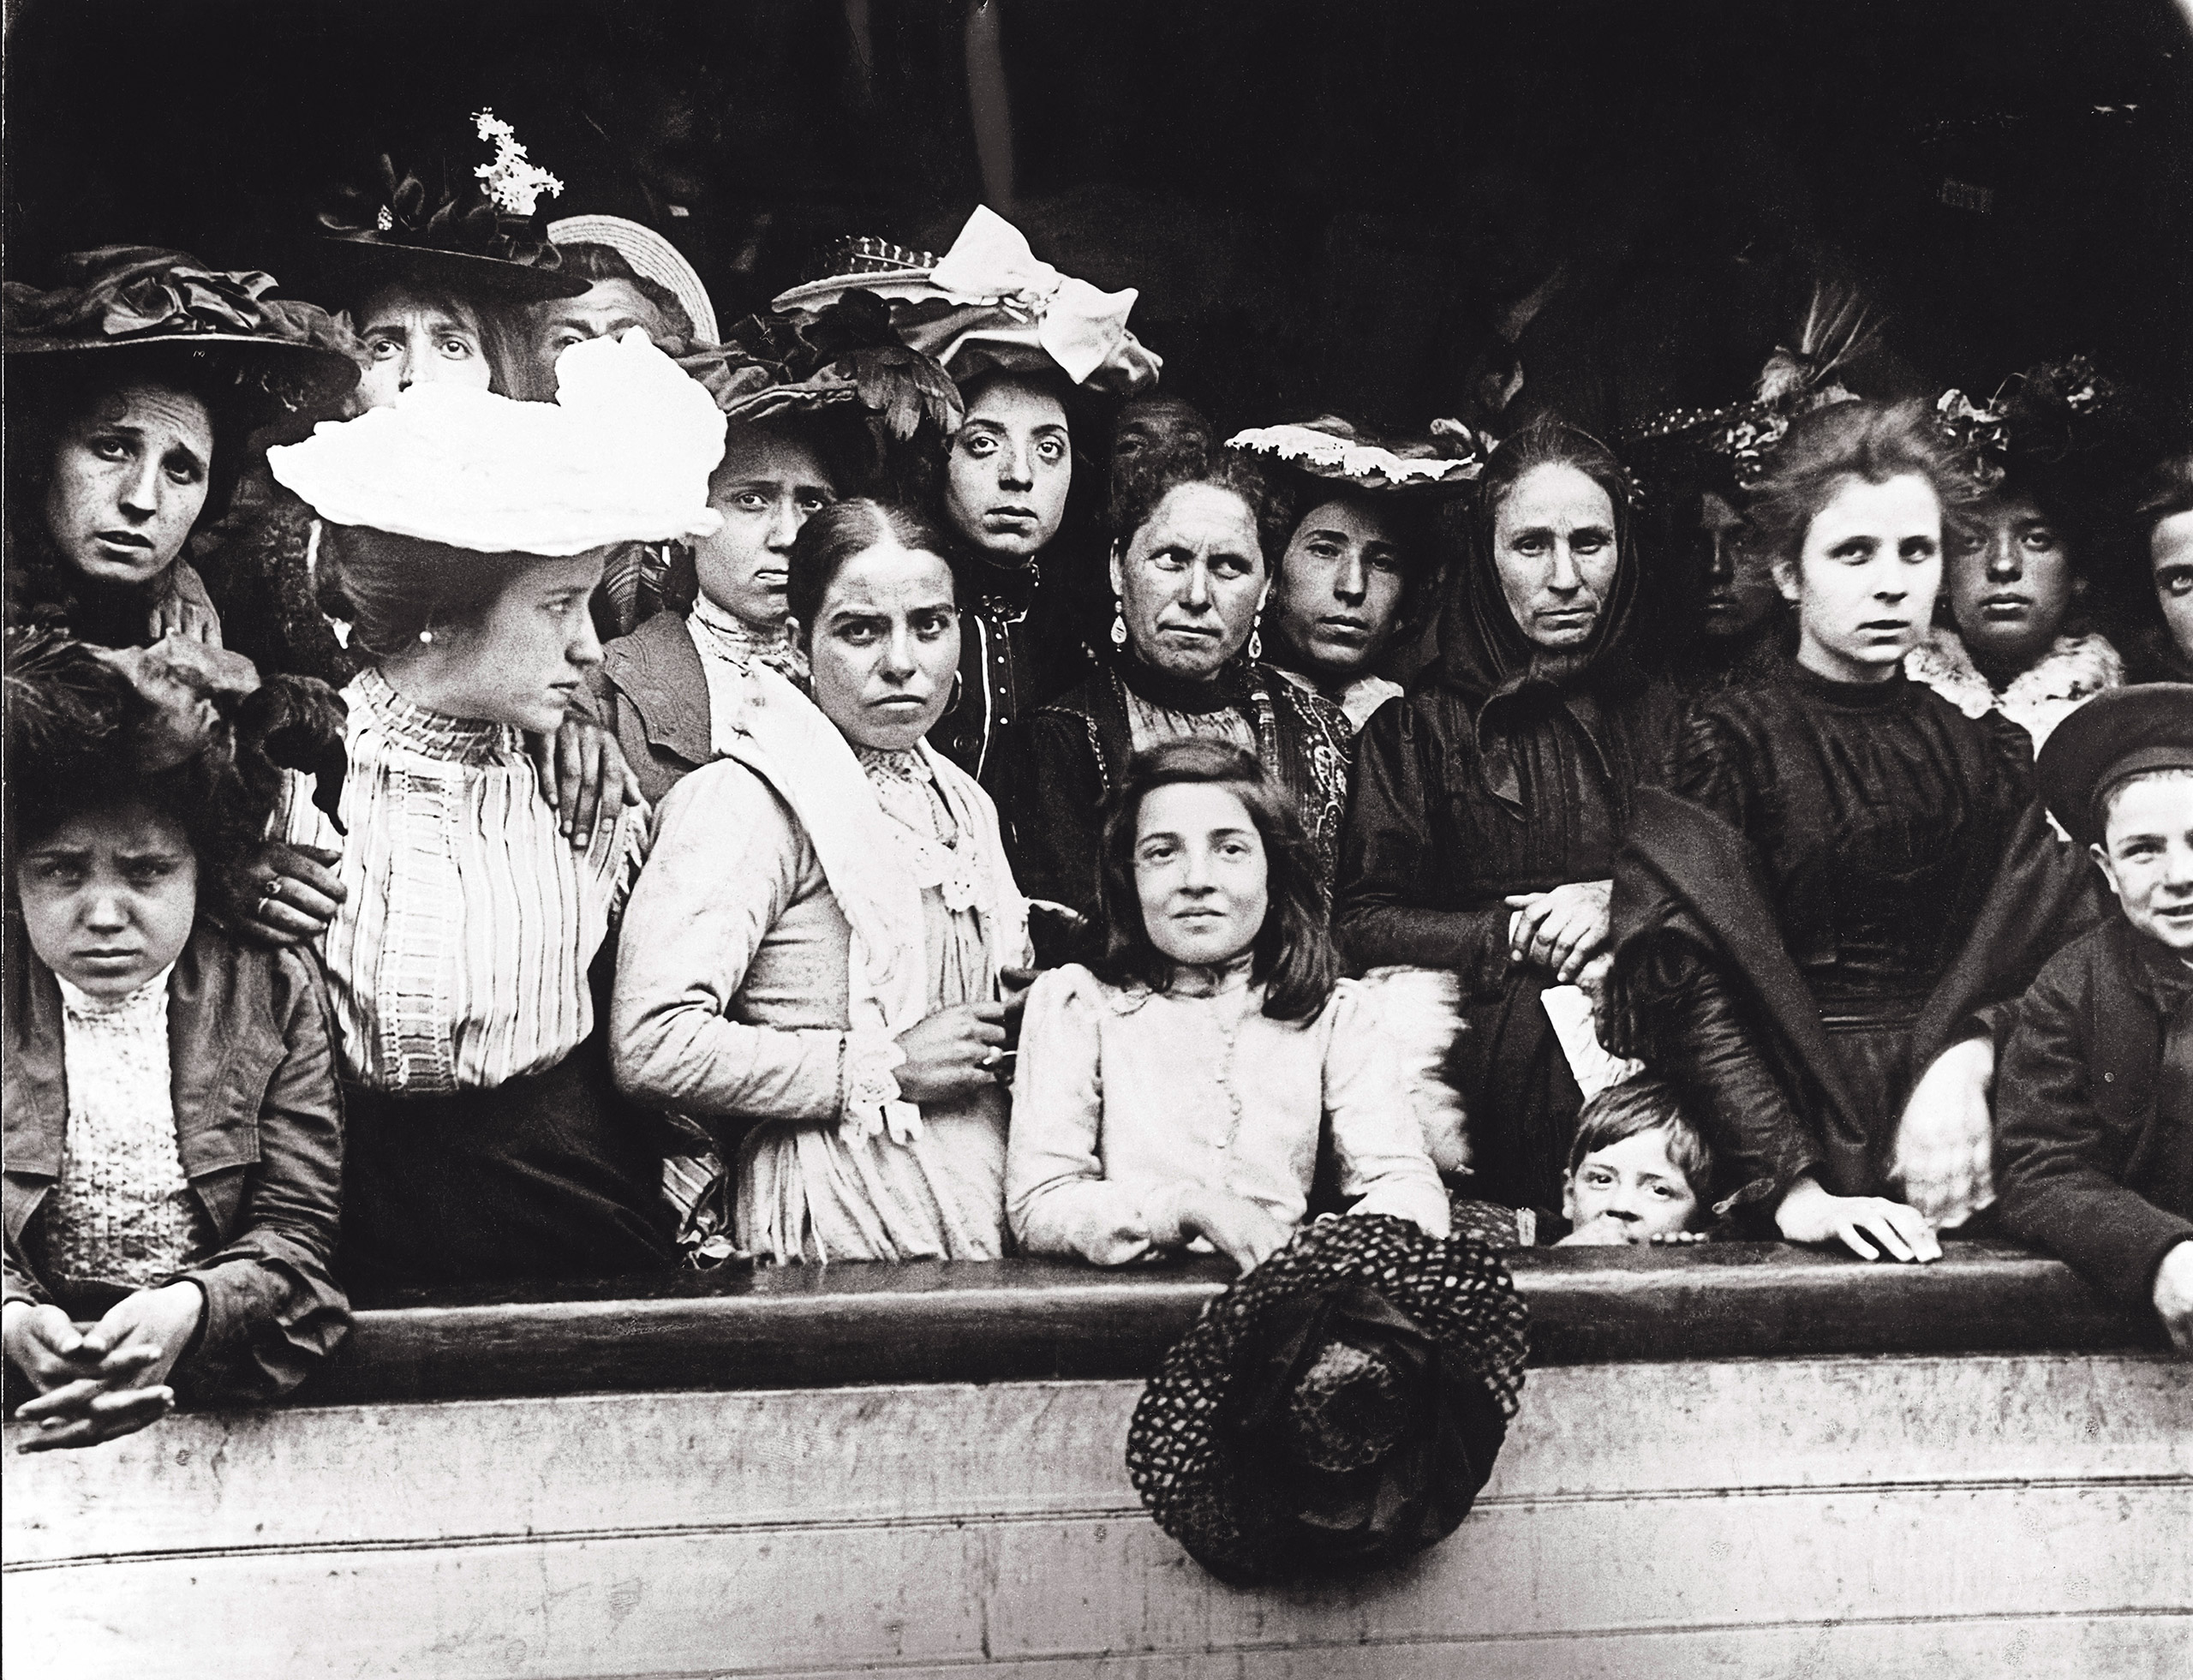 Immigrants on board a ship arriving in New York, circa 1910.